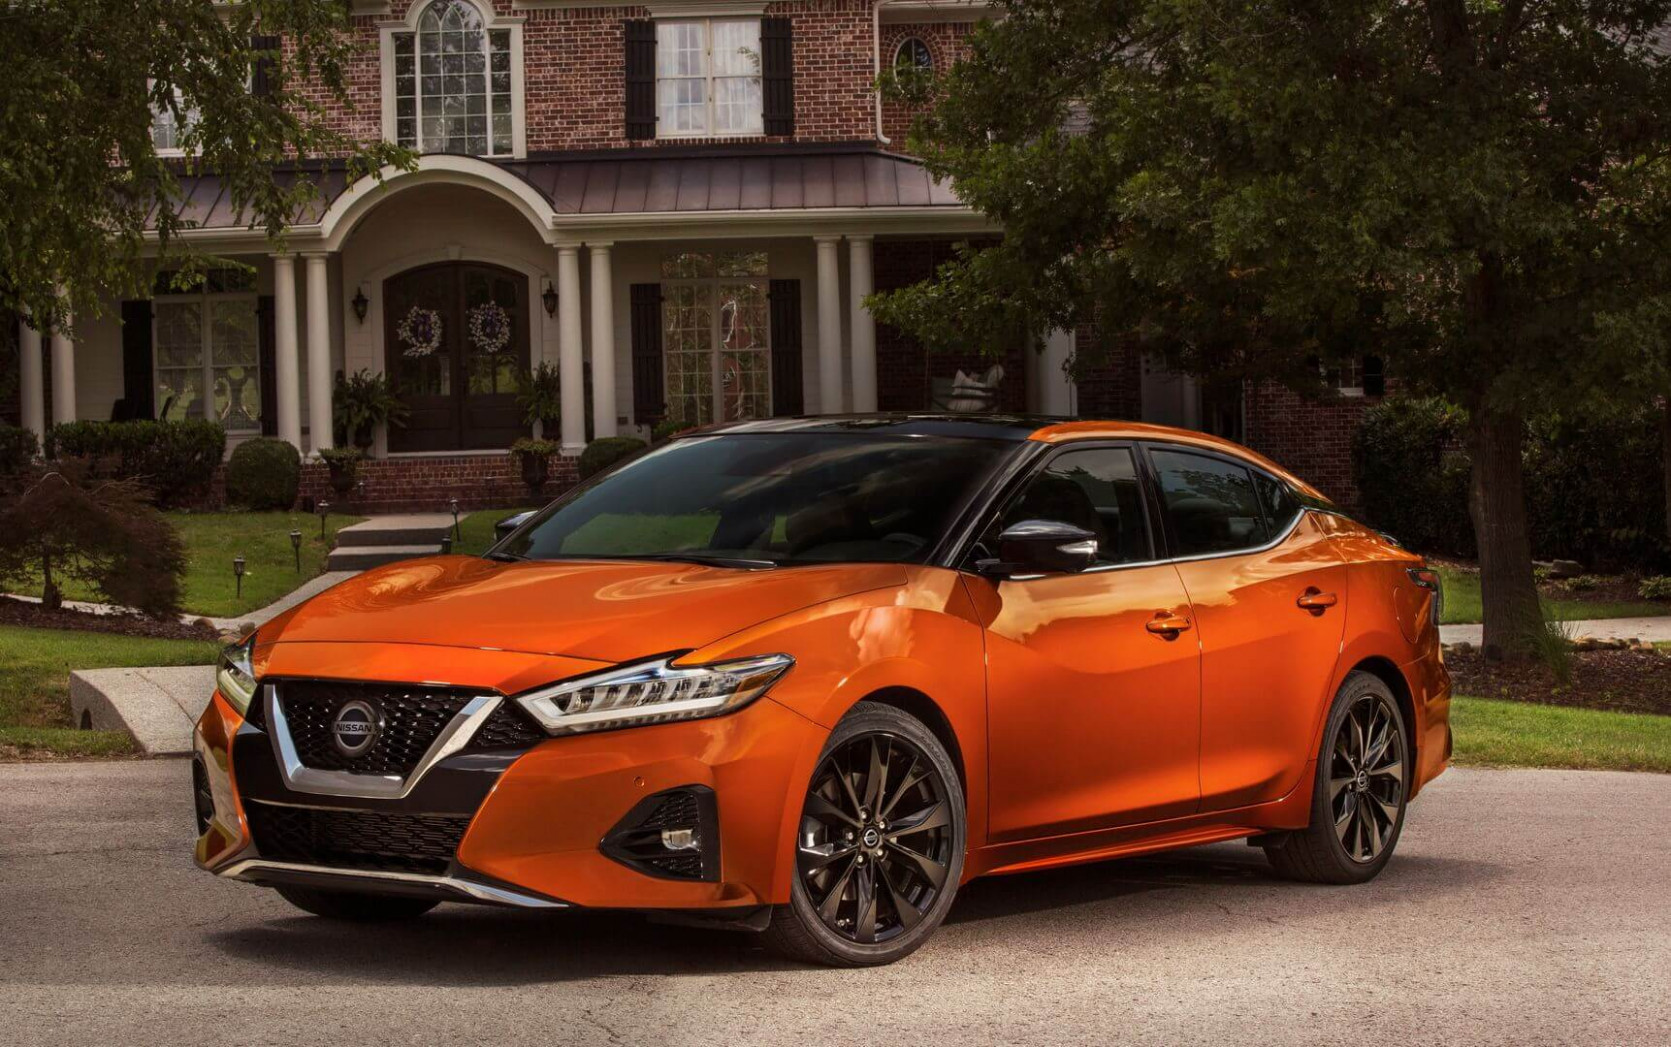 Exterior and Interior When Does The 2022 Nissan Maxima Come Out